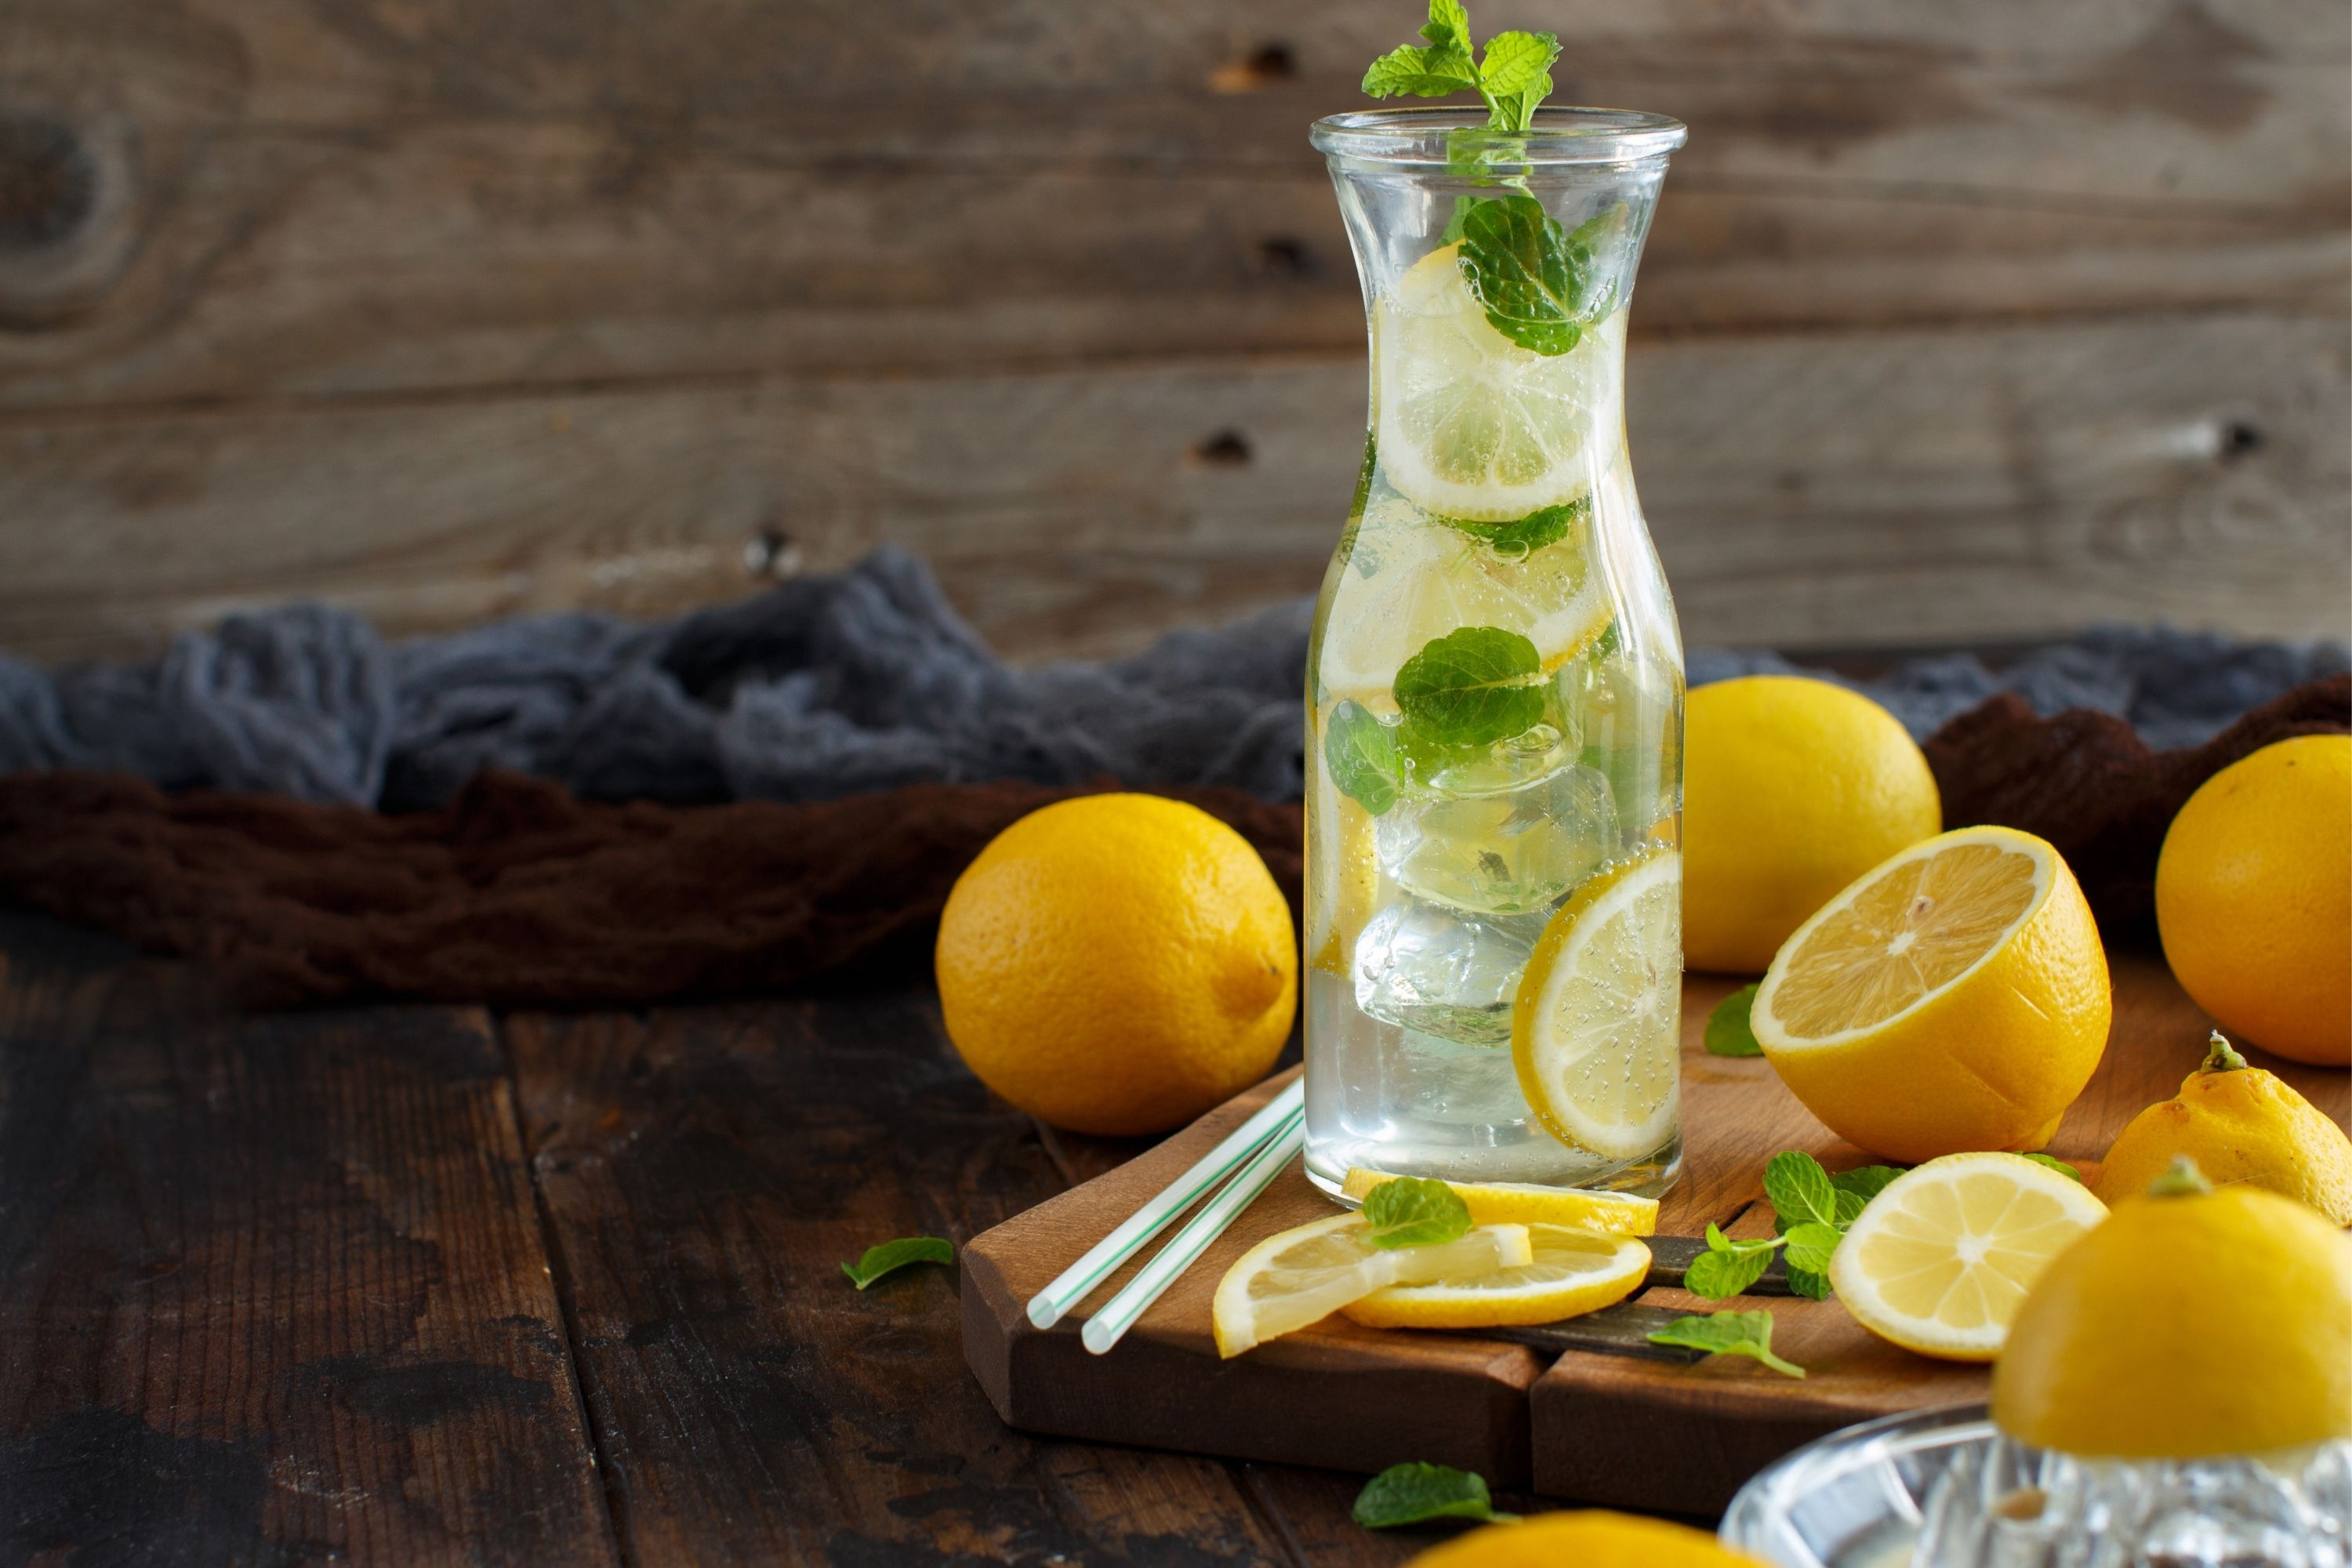 How many spoonfuls of citrus drink in a lemon